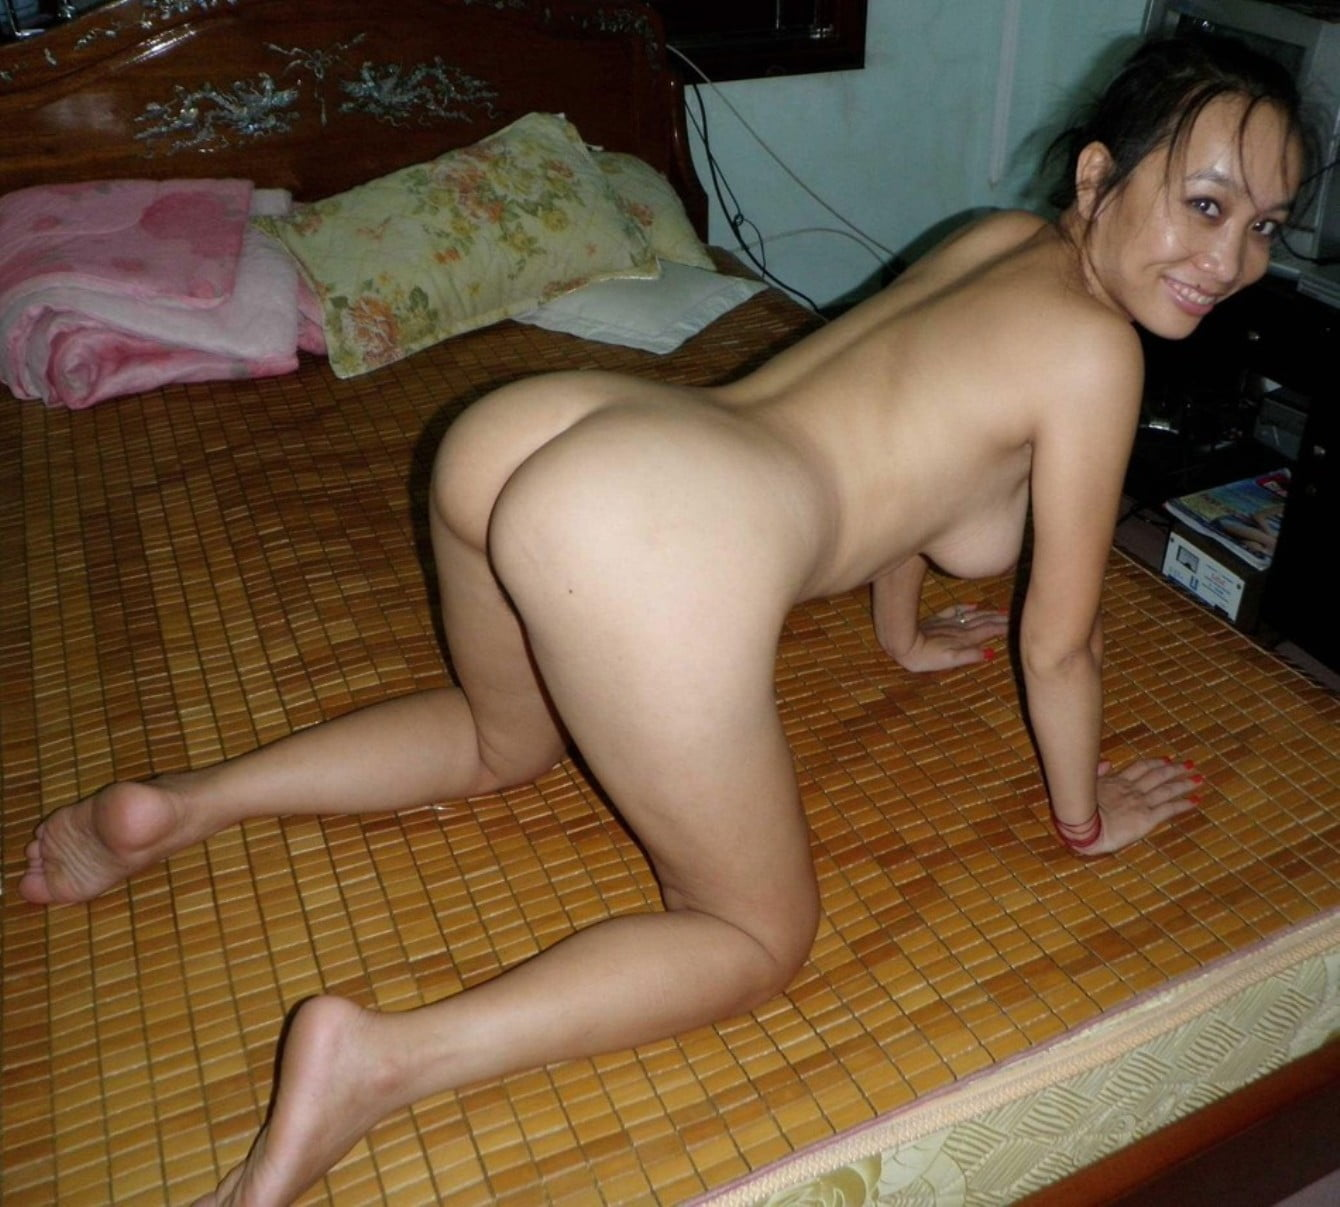 Indonesian Woman Showing Her Big Butt Nudemilfselfie Com